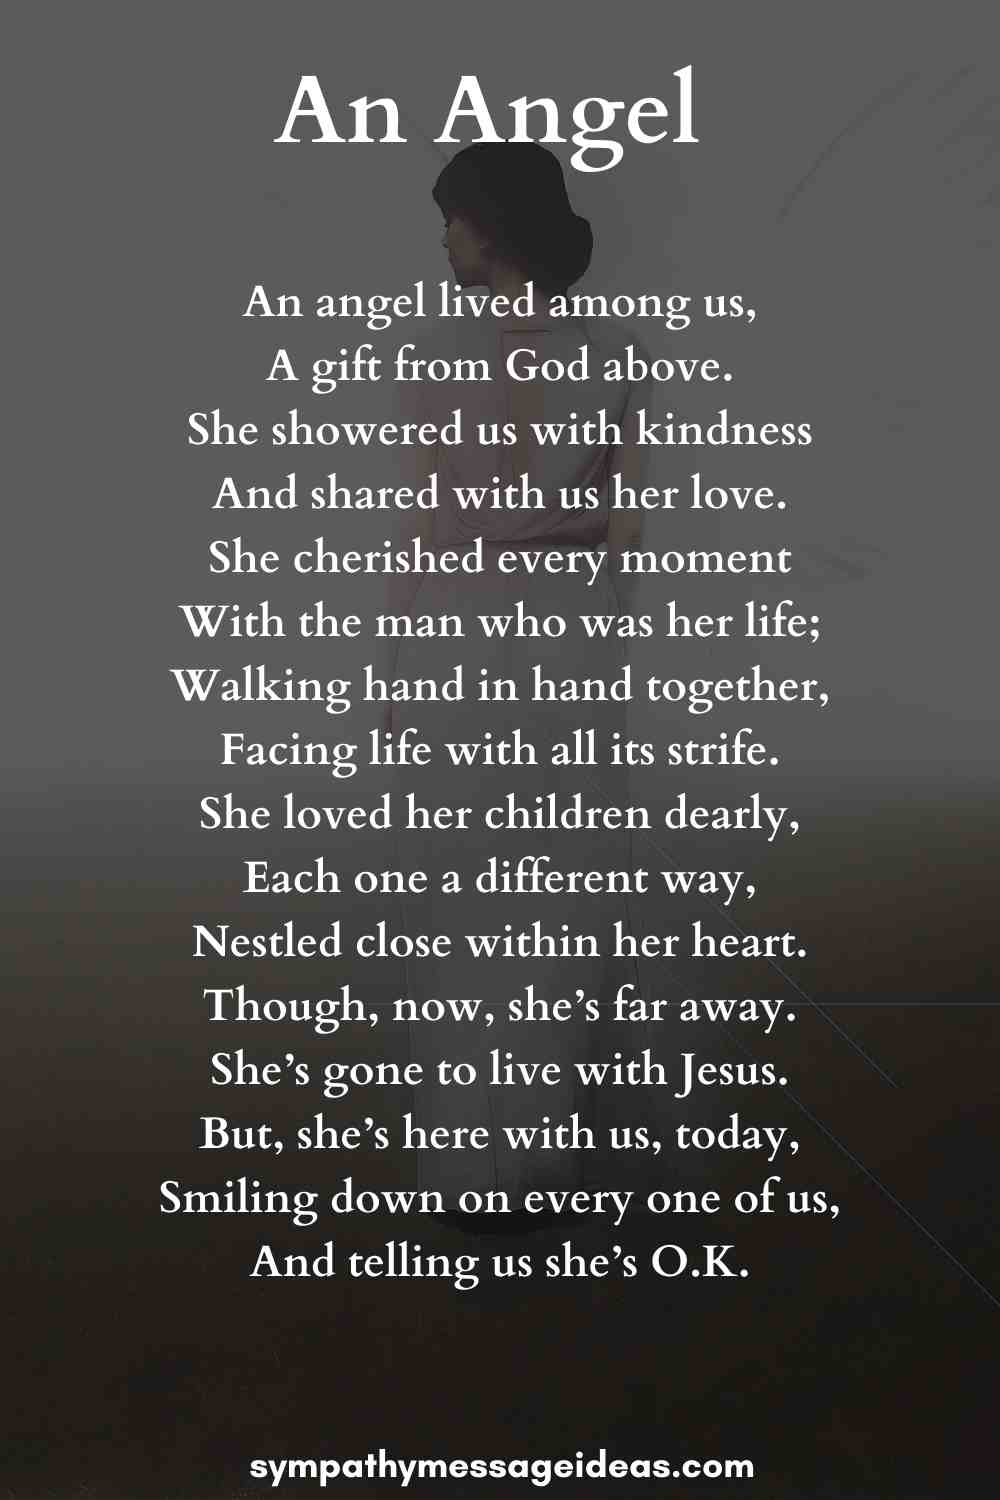 an angel funeral poem for a mom